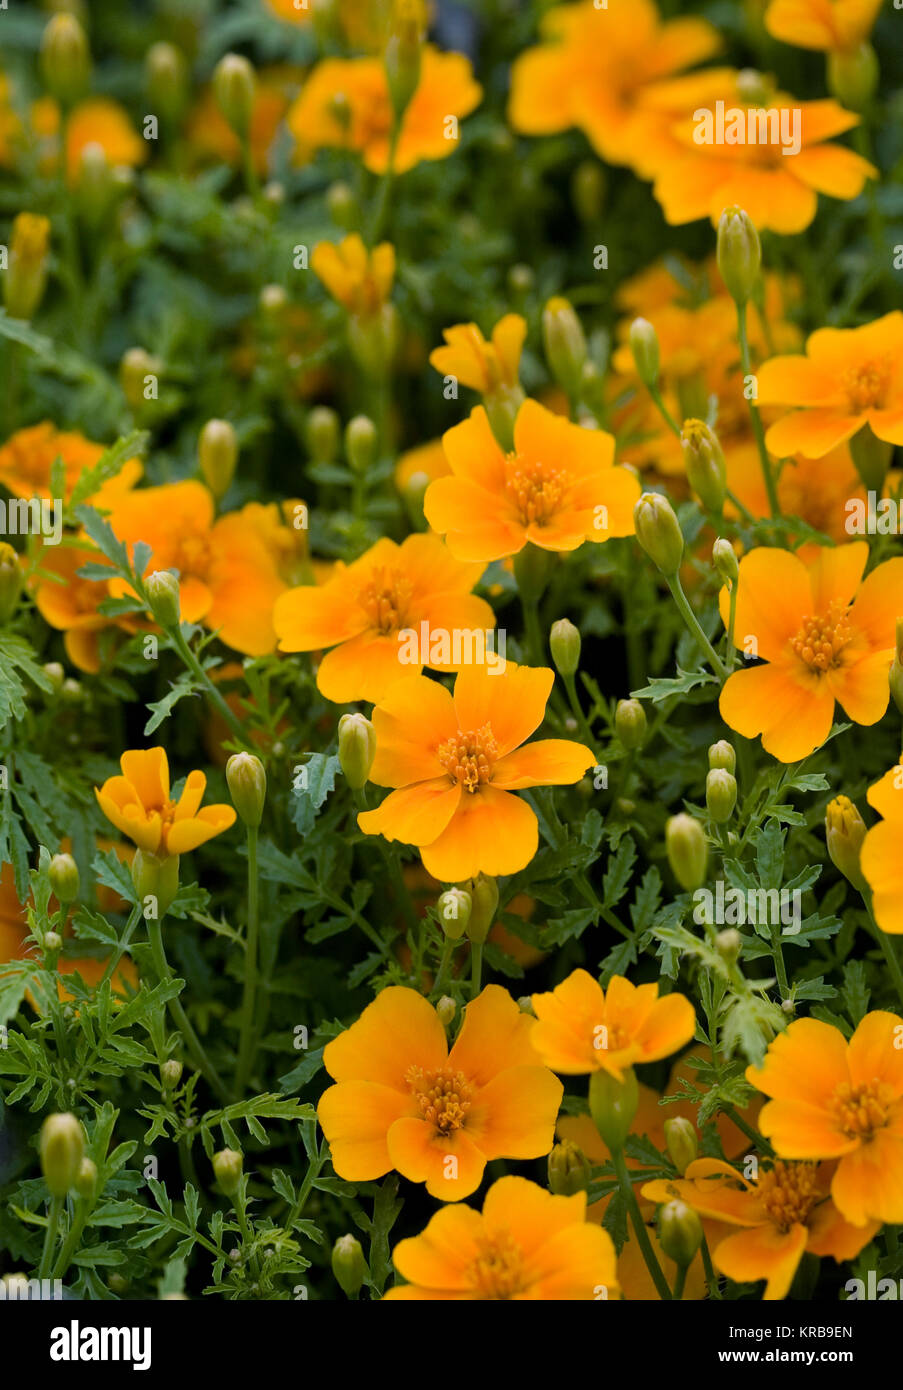 French Marigolds Stock Photos   French Marigolds Stock Images   Alamy Tagetes patula flowers  French marigolds in the garden    Stock Image